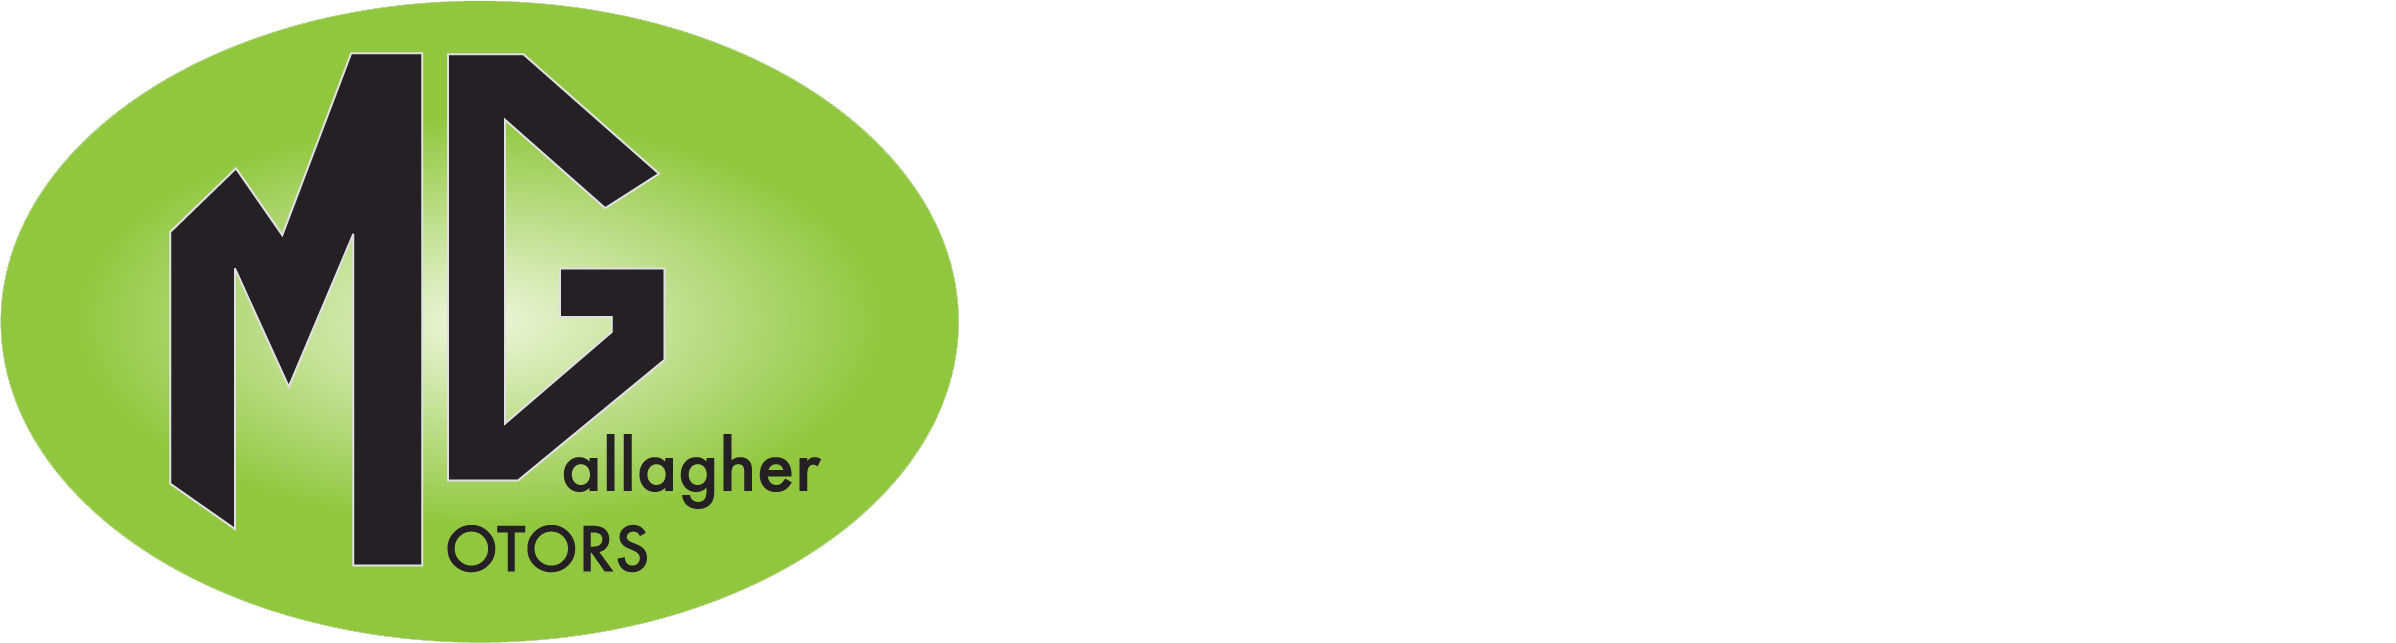 M Gallagher Motors